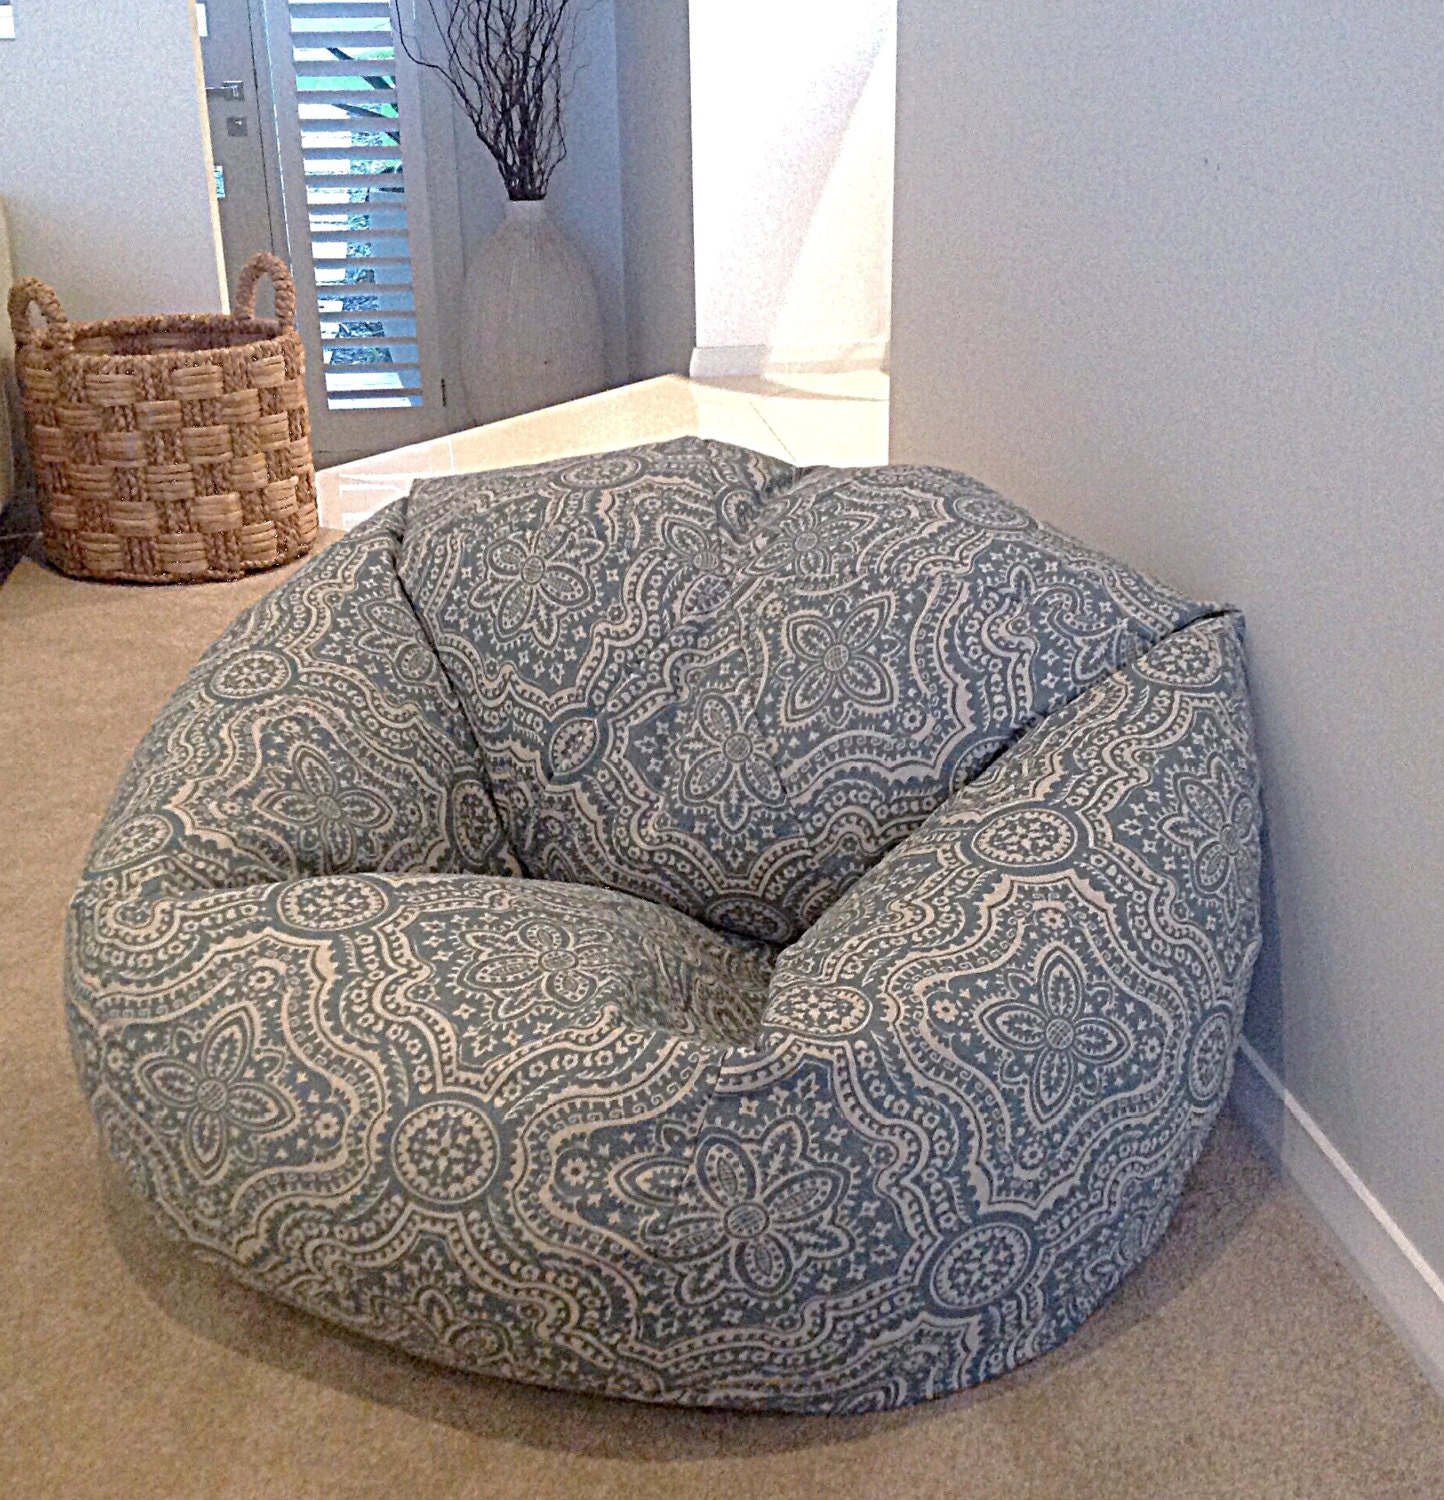 Bean bag chairs for teenage girls -  Zoom